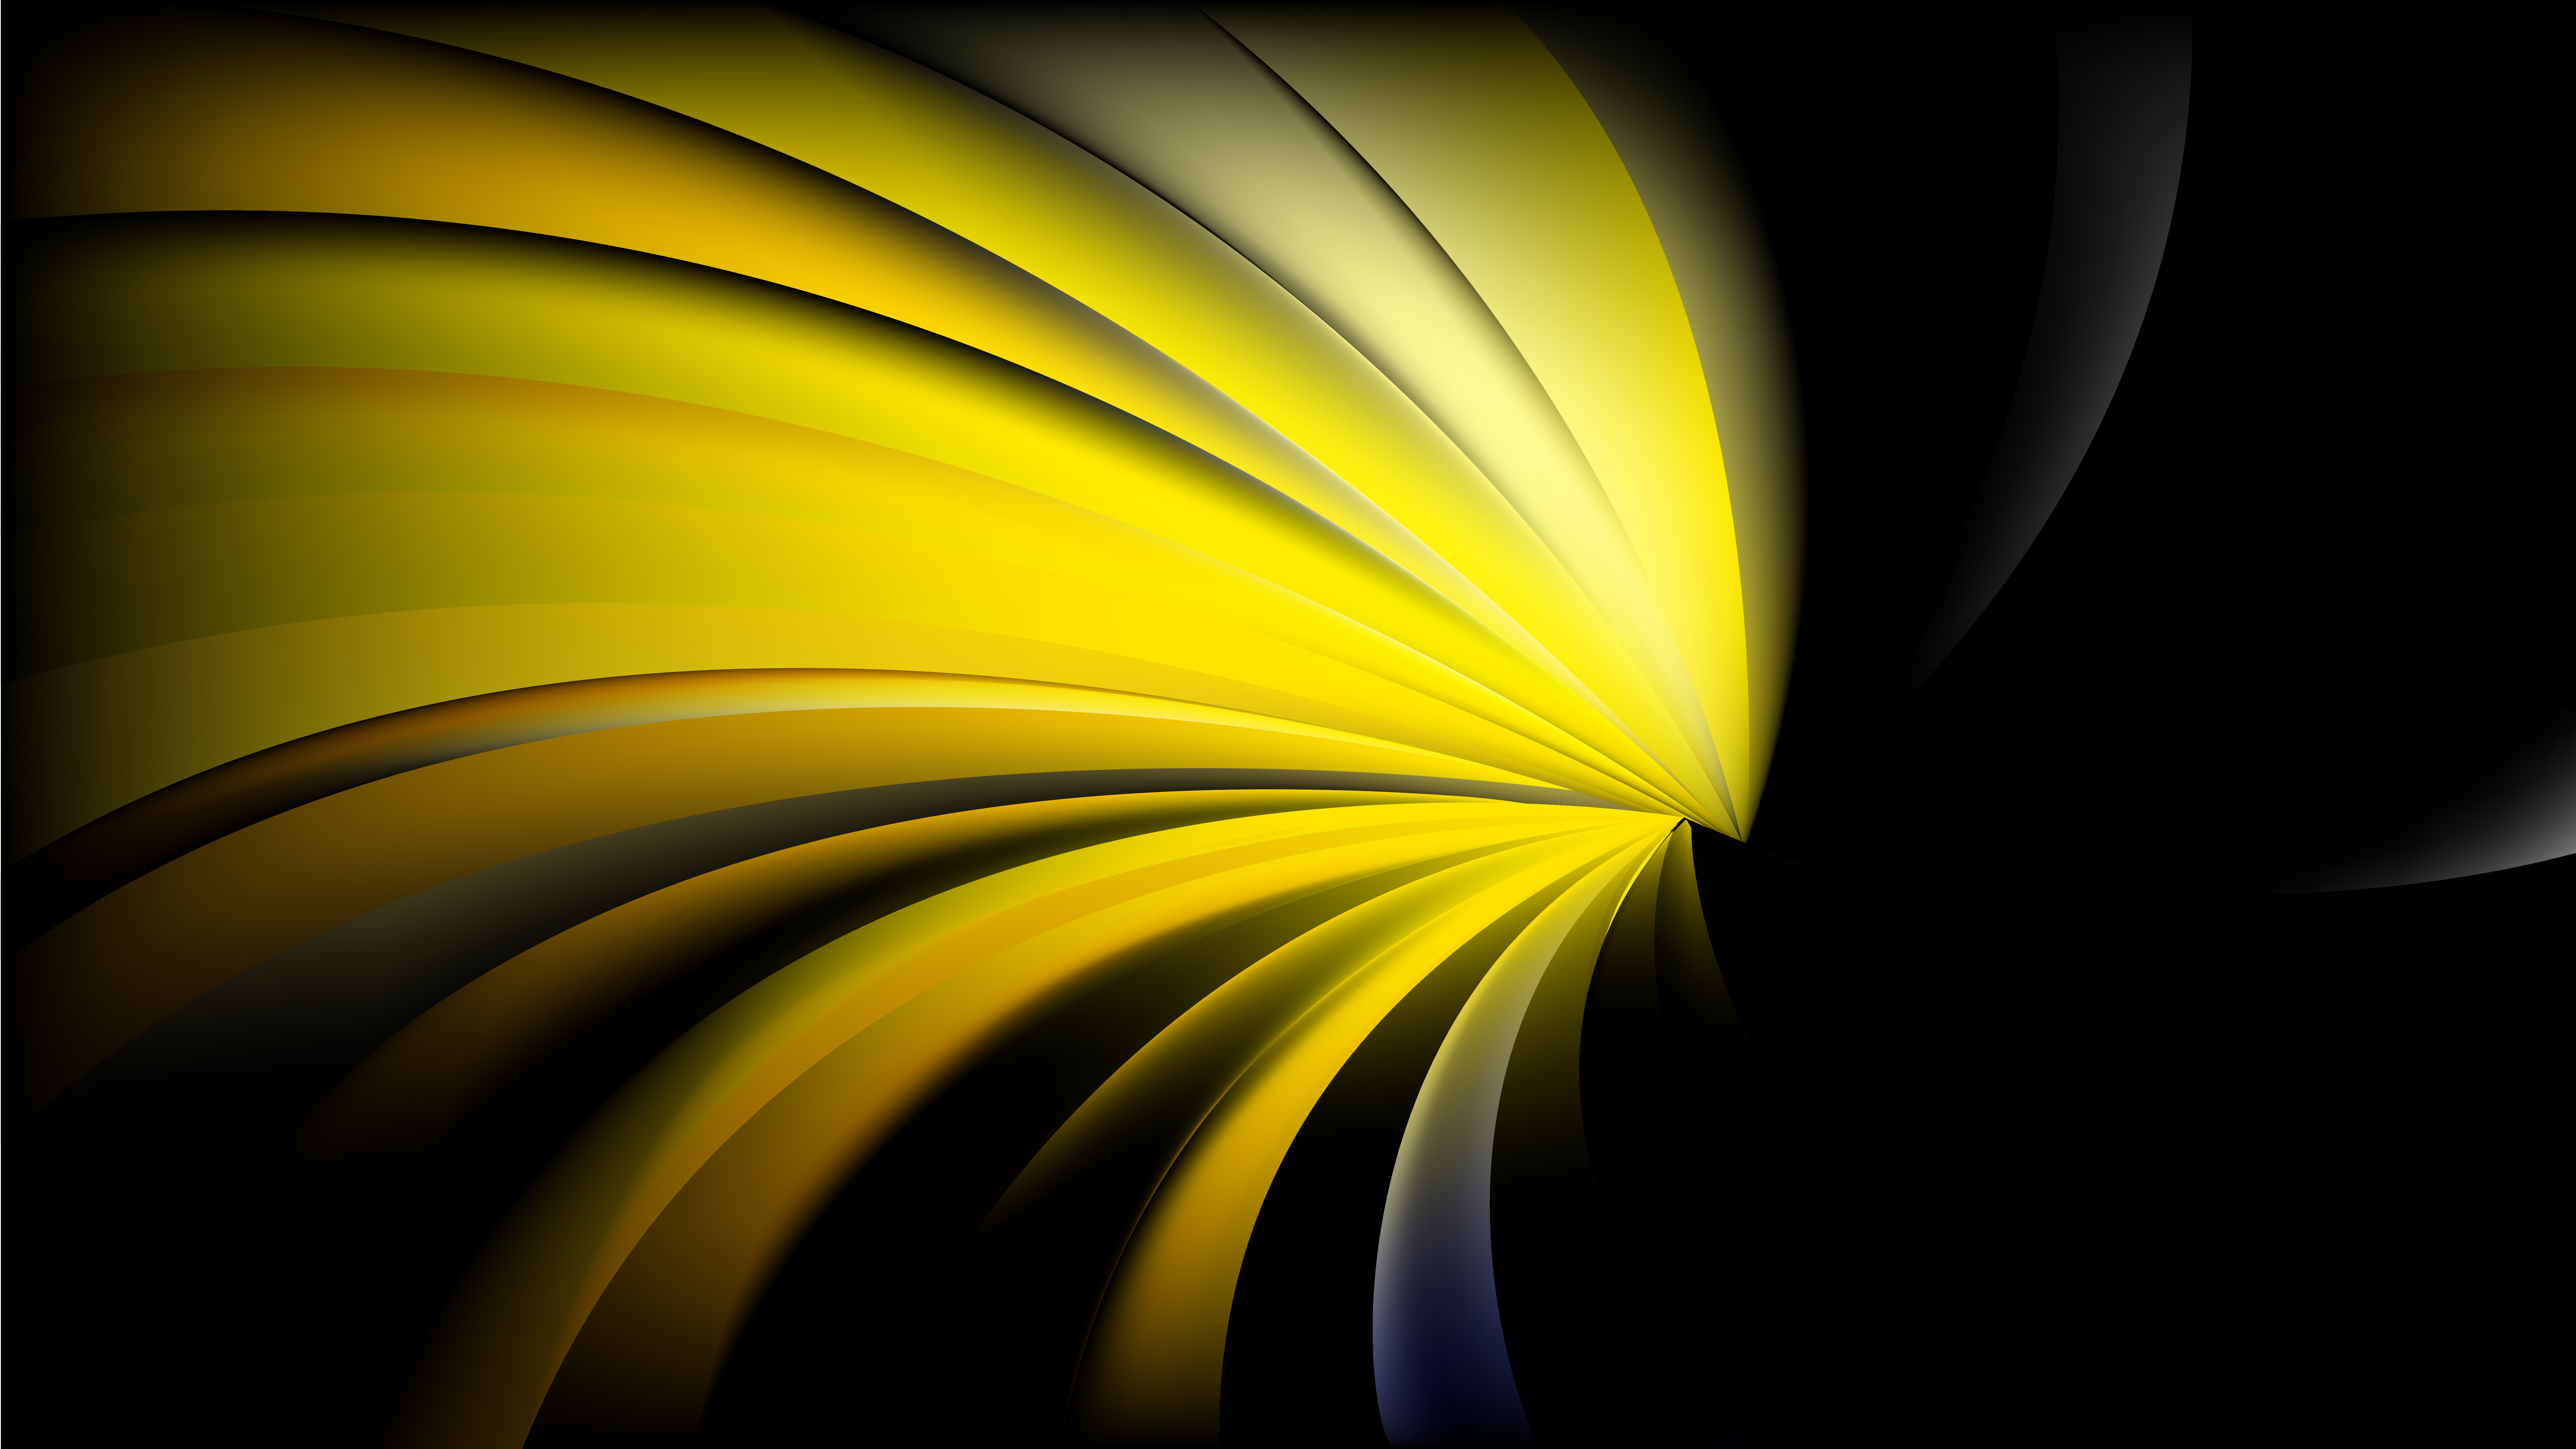 8000x4500 - Yellow and Black 4